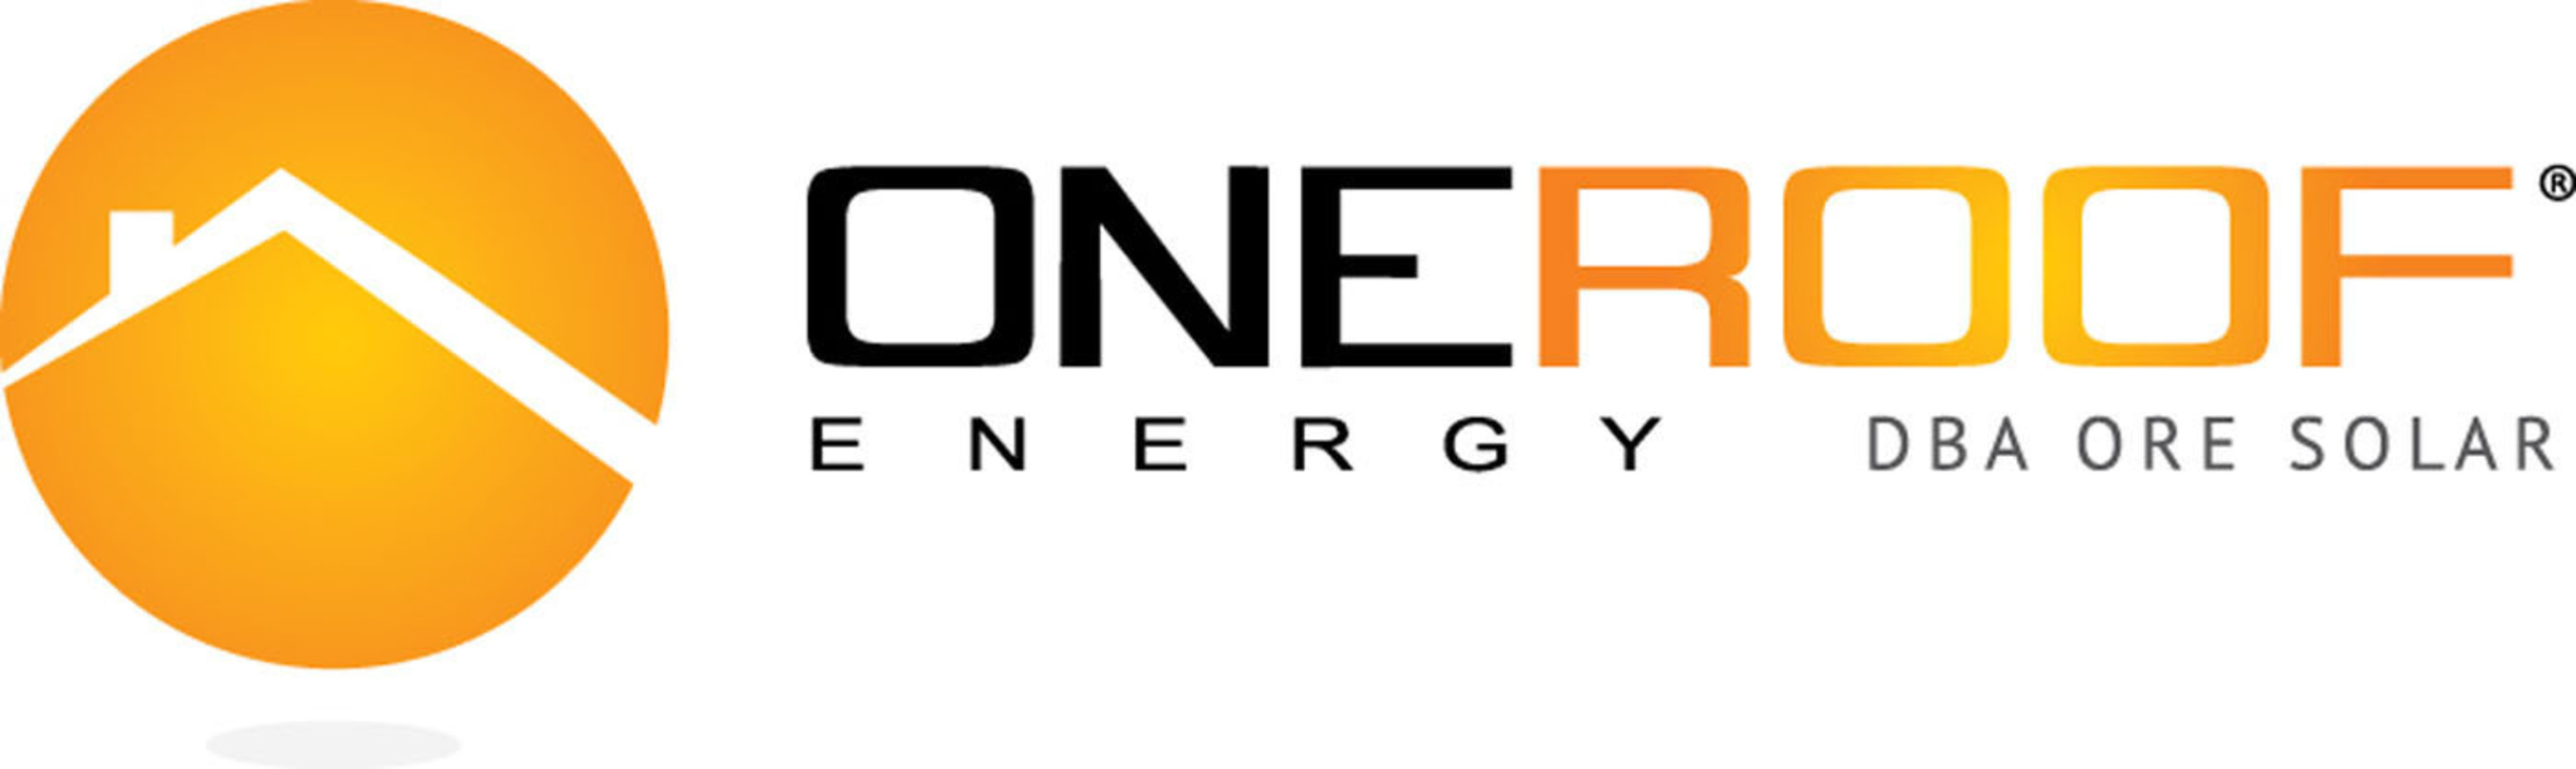 OneRoof Energy Realigns Business to Focus on Solar 2.0 Strategy, Enabling Non-Traditional Channel Partners and Their Customers to Go Solar